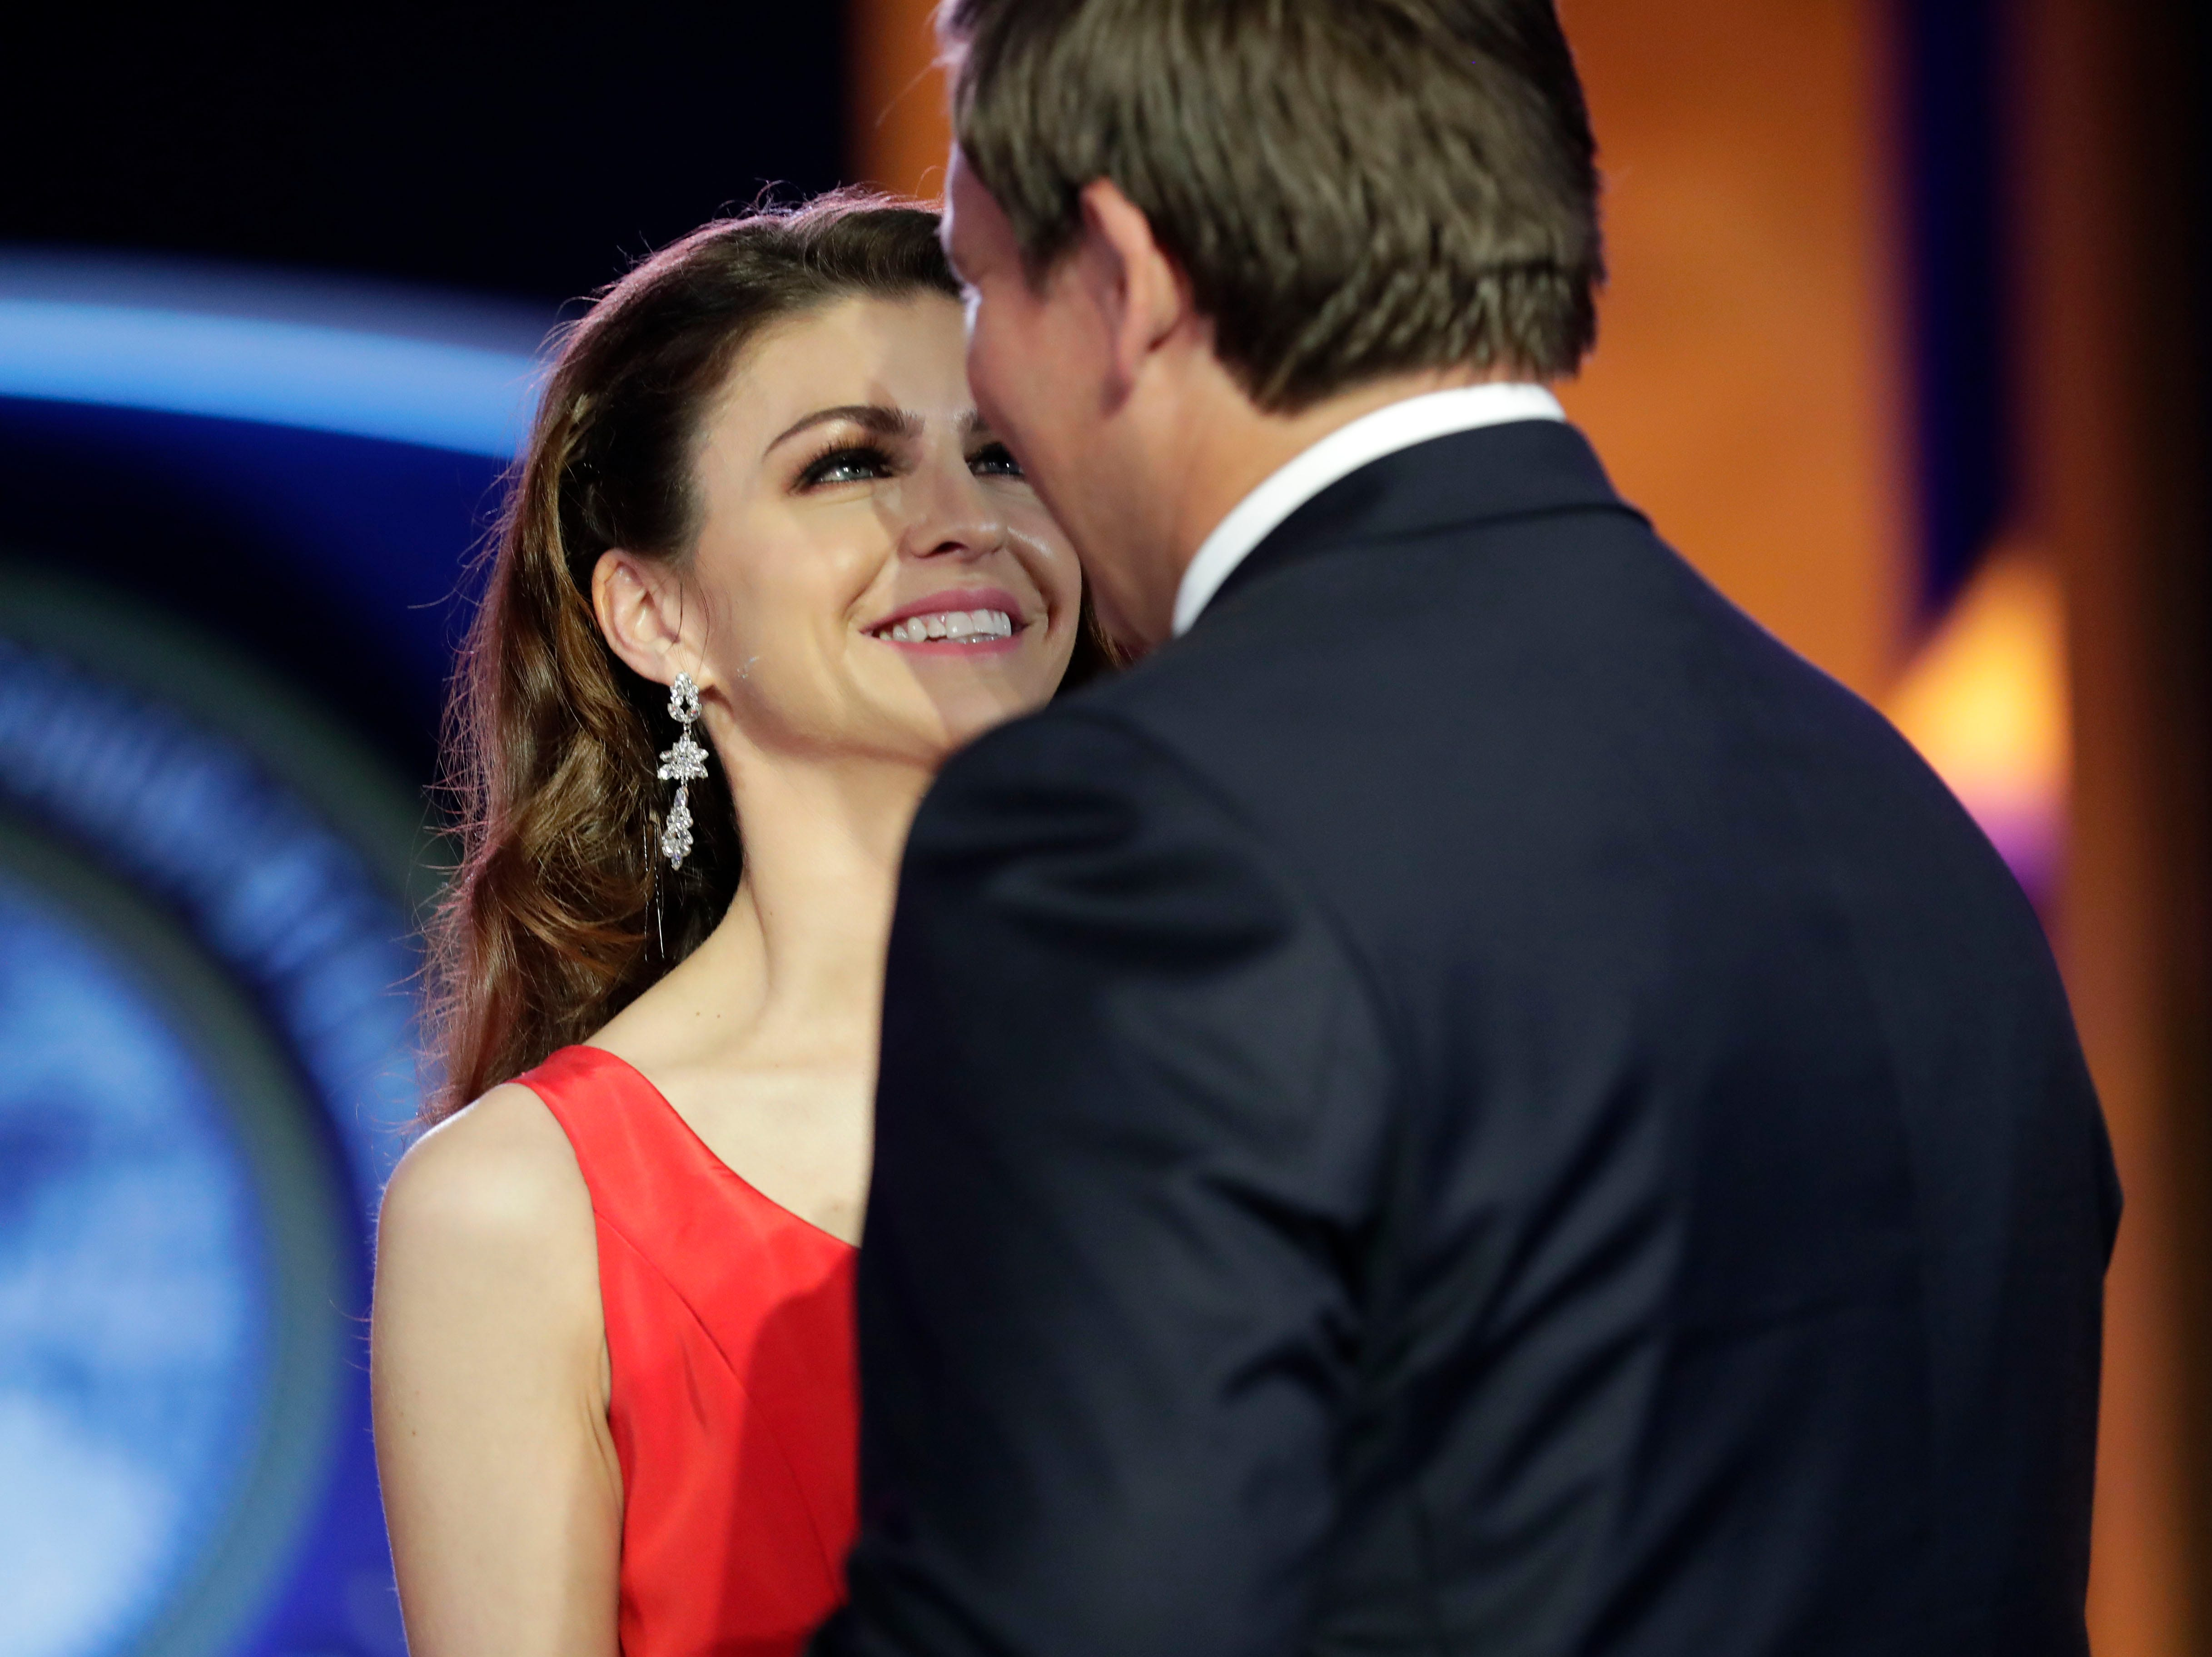 Hundreds of guests from all over Florida attend Florida's 46th Governor's Inaugural Ball at the Tucker Civic Center, Tuesday, Jan. 8, 2019. First lady Casey DeSantis gazes into Gov. Ron DeSantis's eyes as they dance.